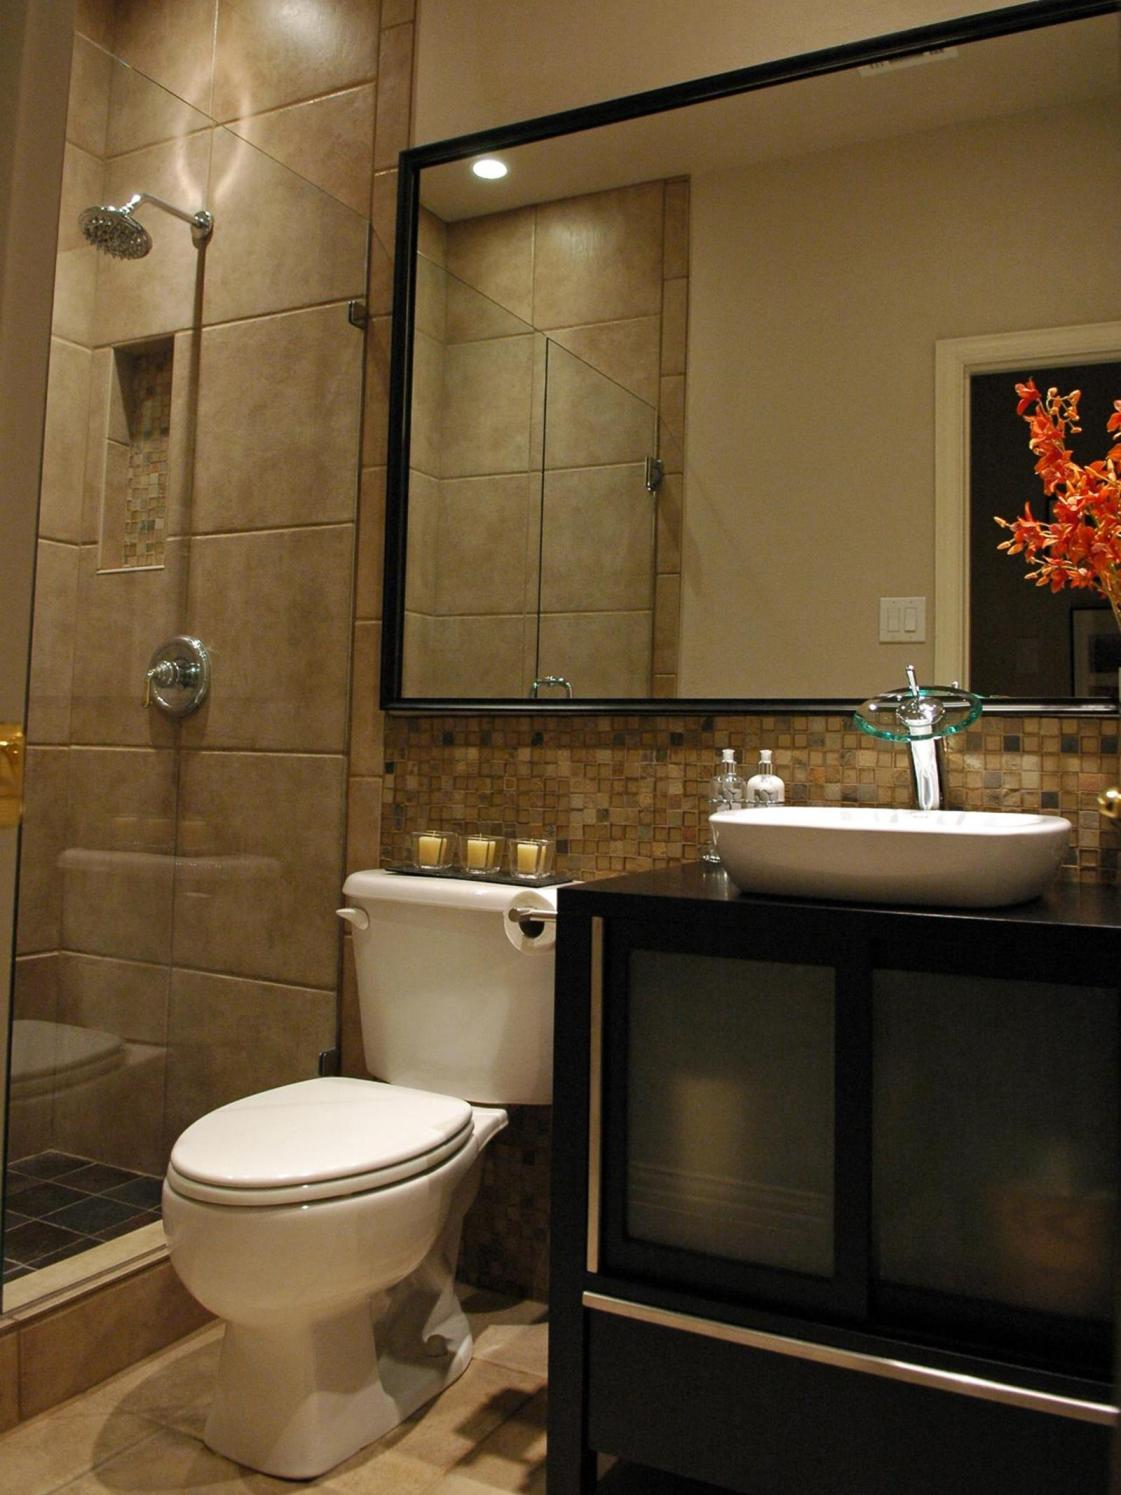 Spa Bathroom Remodel For Small Space 38